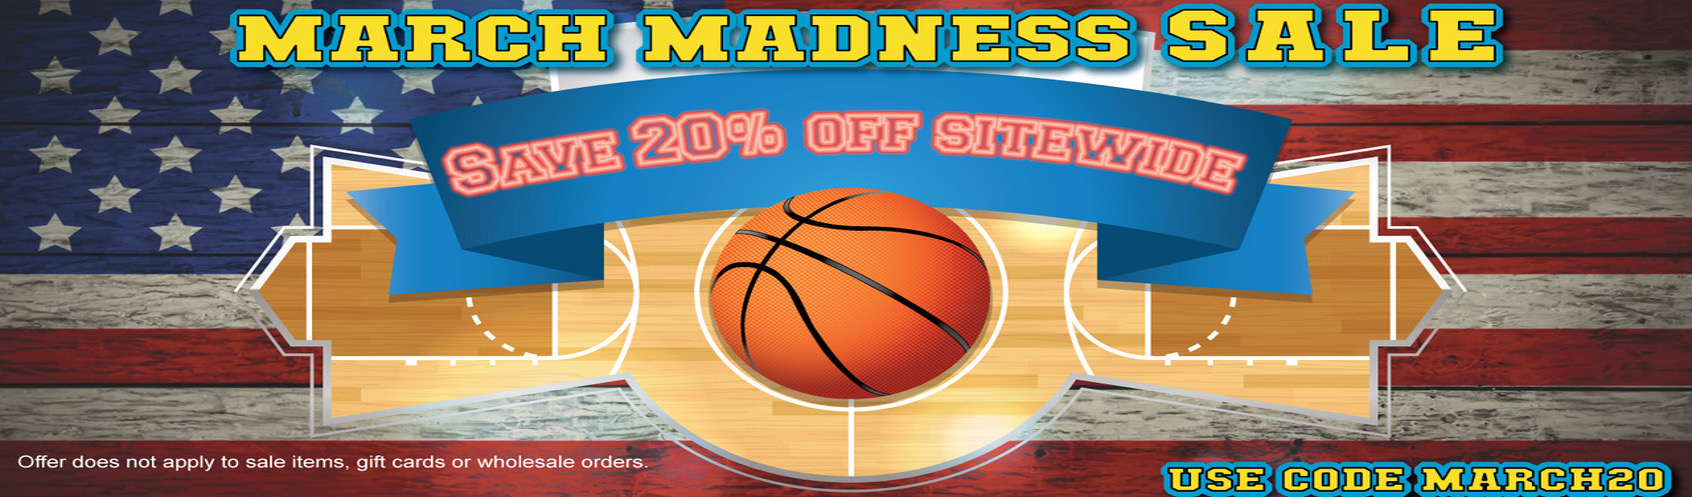 March Madness Sale |All USA Clothing